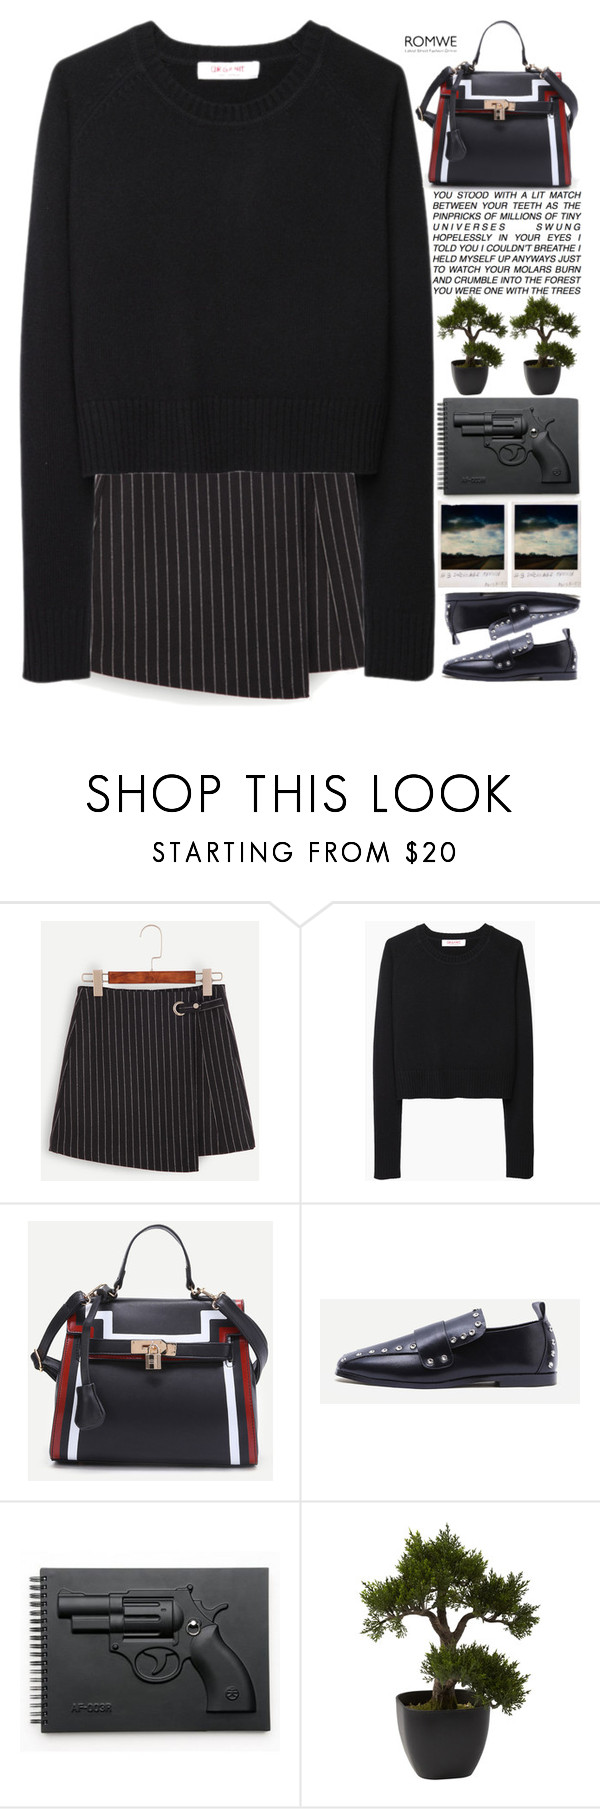 """lit"" by scarlett-morwenna ❤ liked on Polyvore featuring Organic by John Patrick, Revolver, Nearly Natural and vintage"